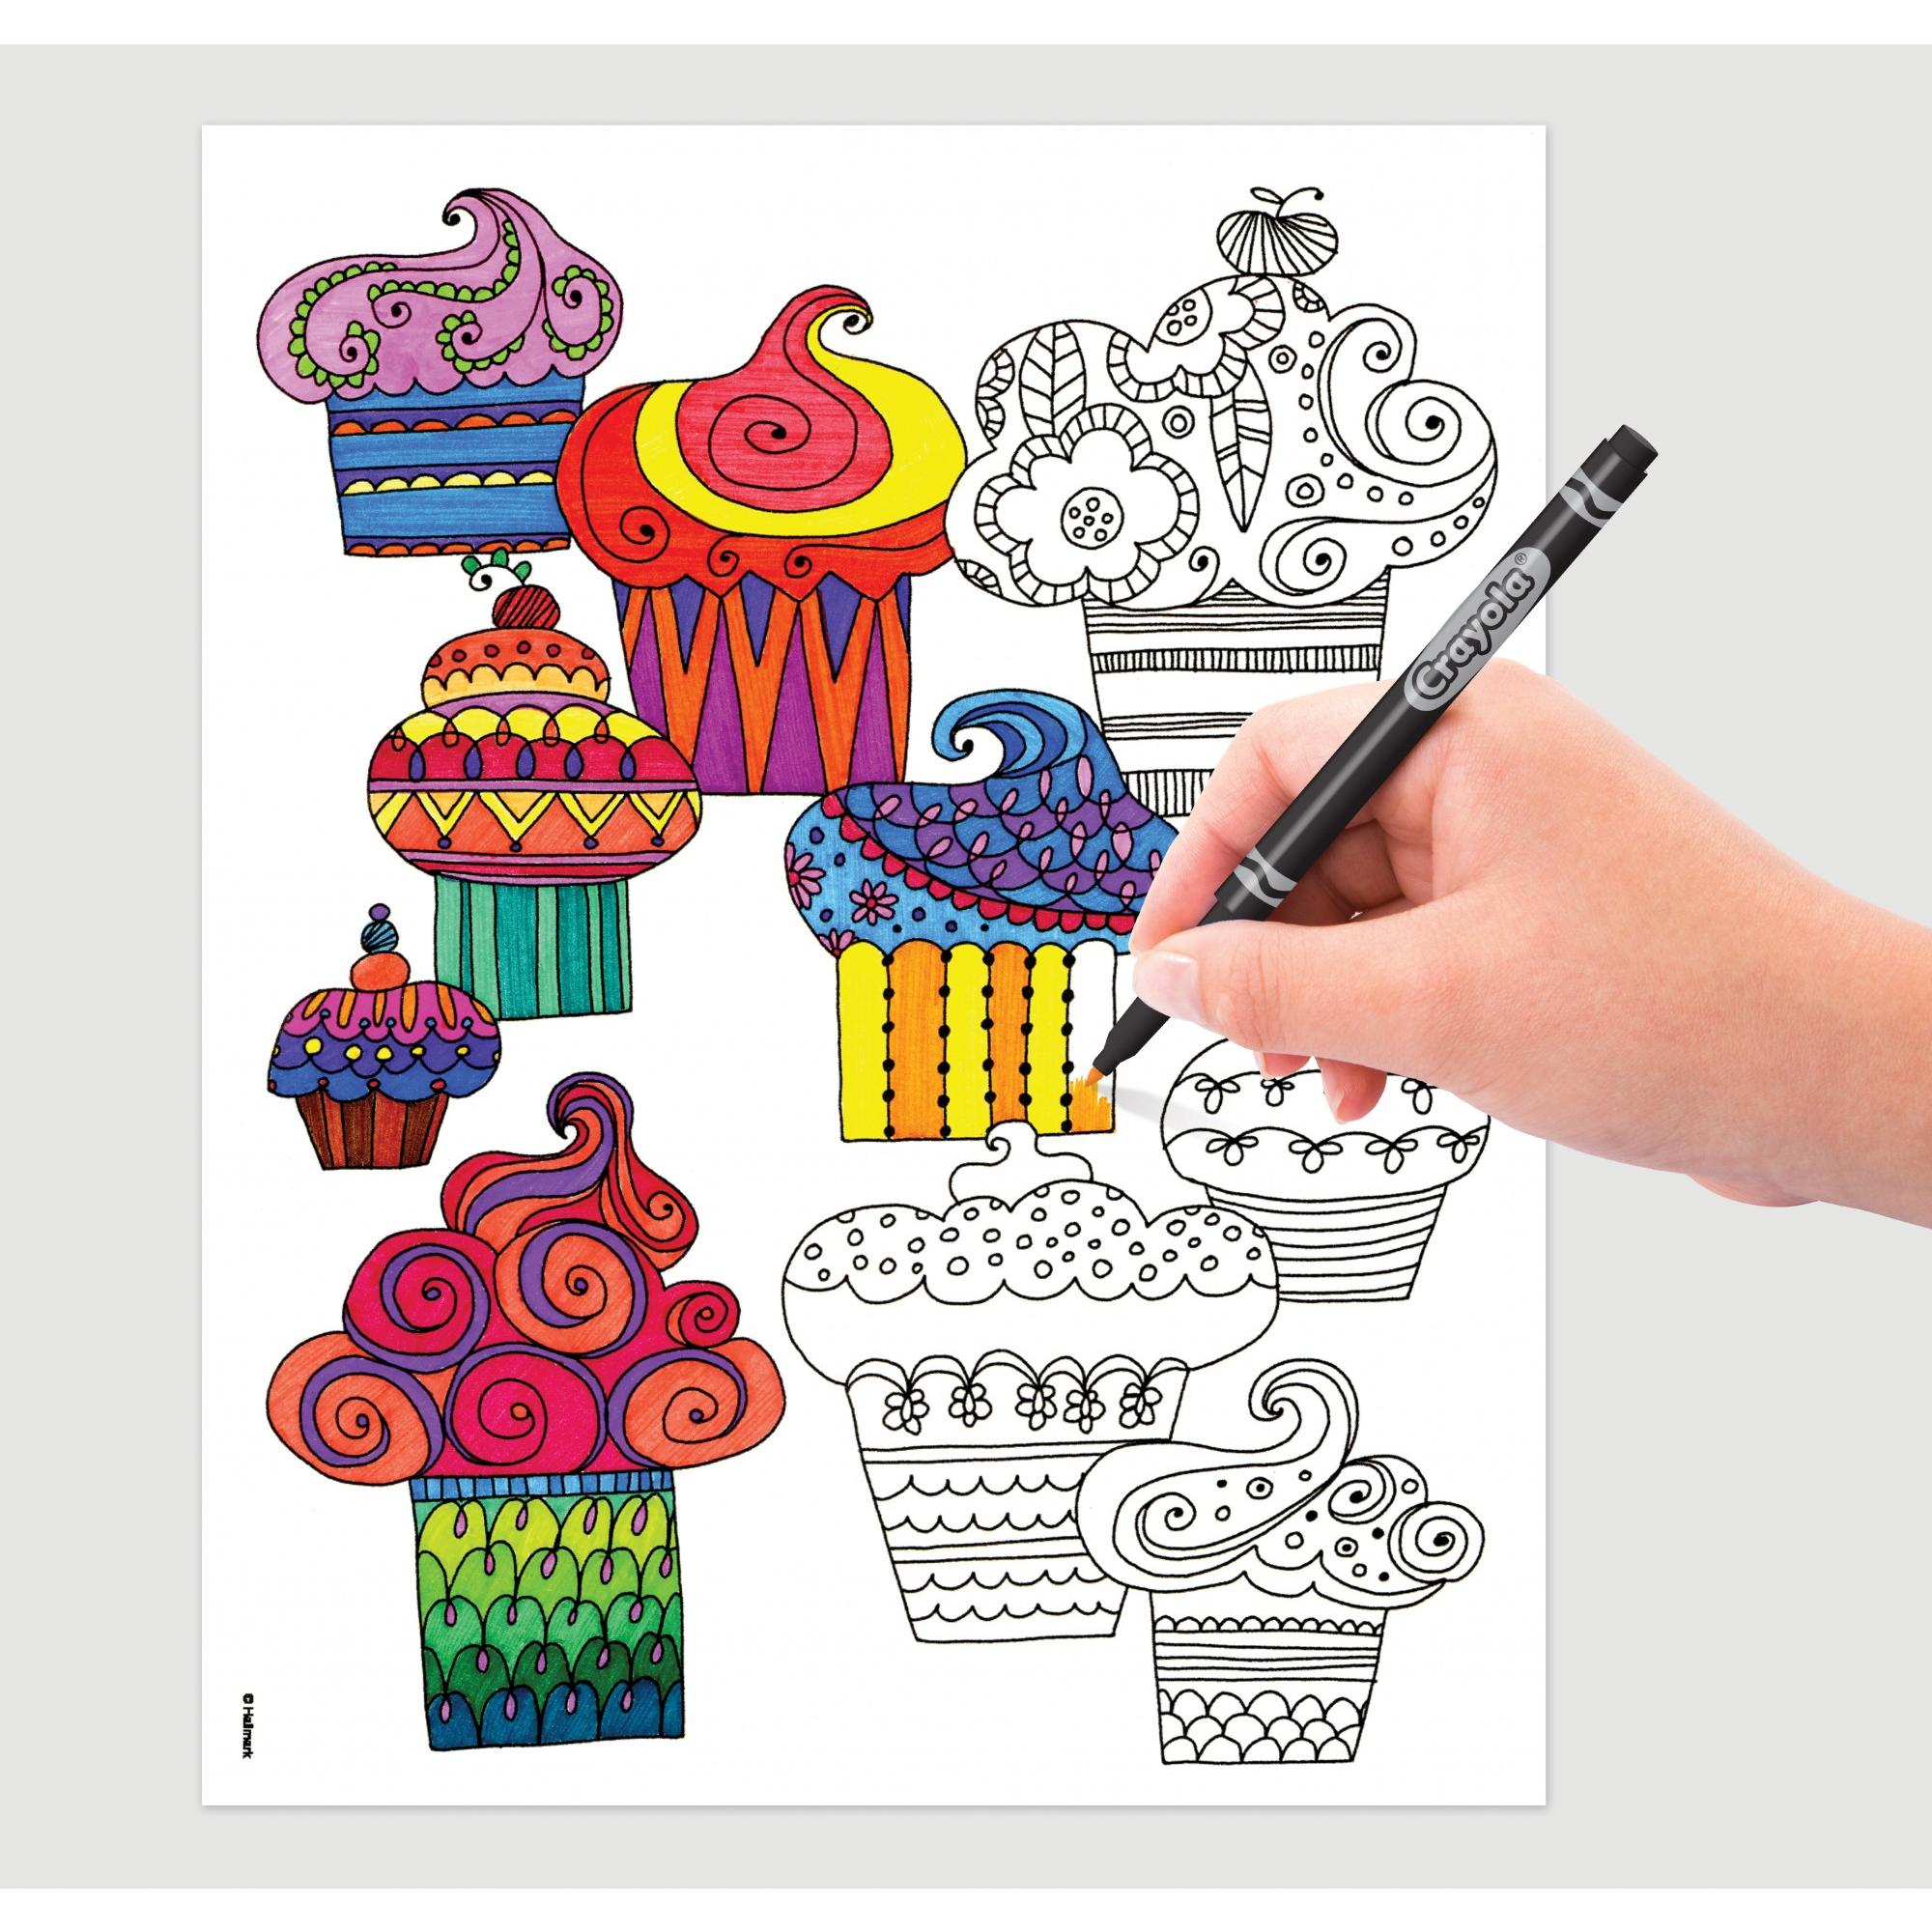 Whimsical designs coloring book - Whimsical Designs Coloring Book 59